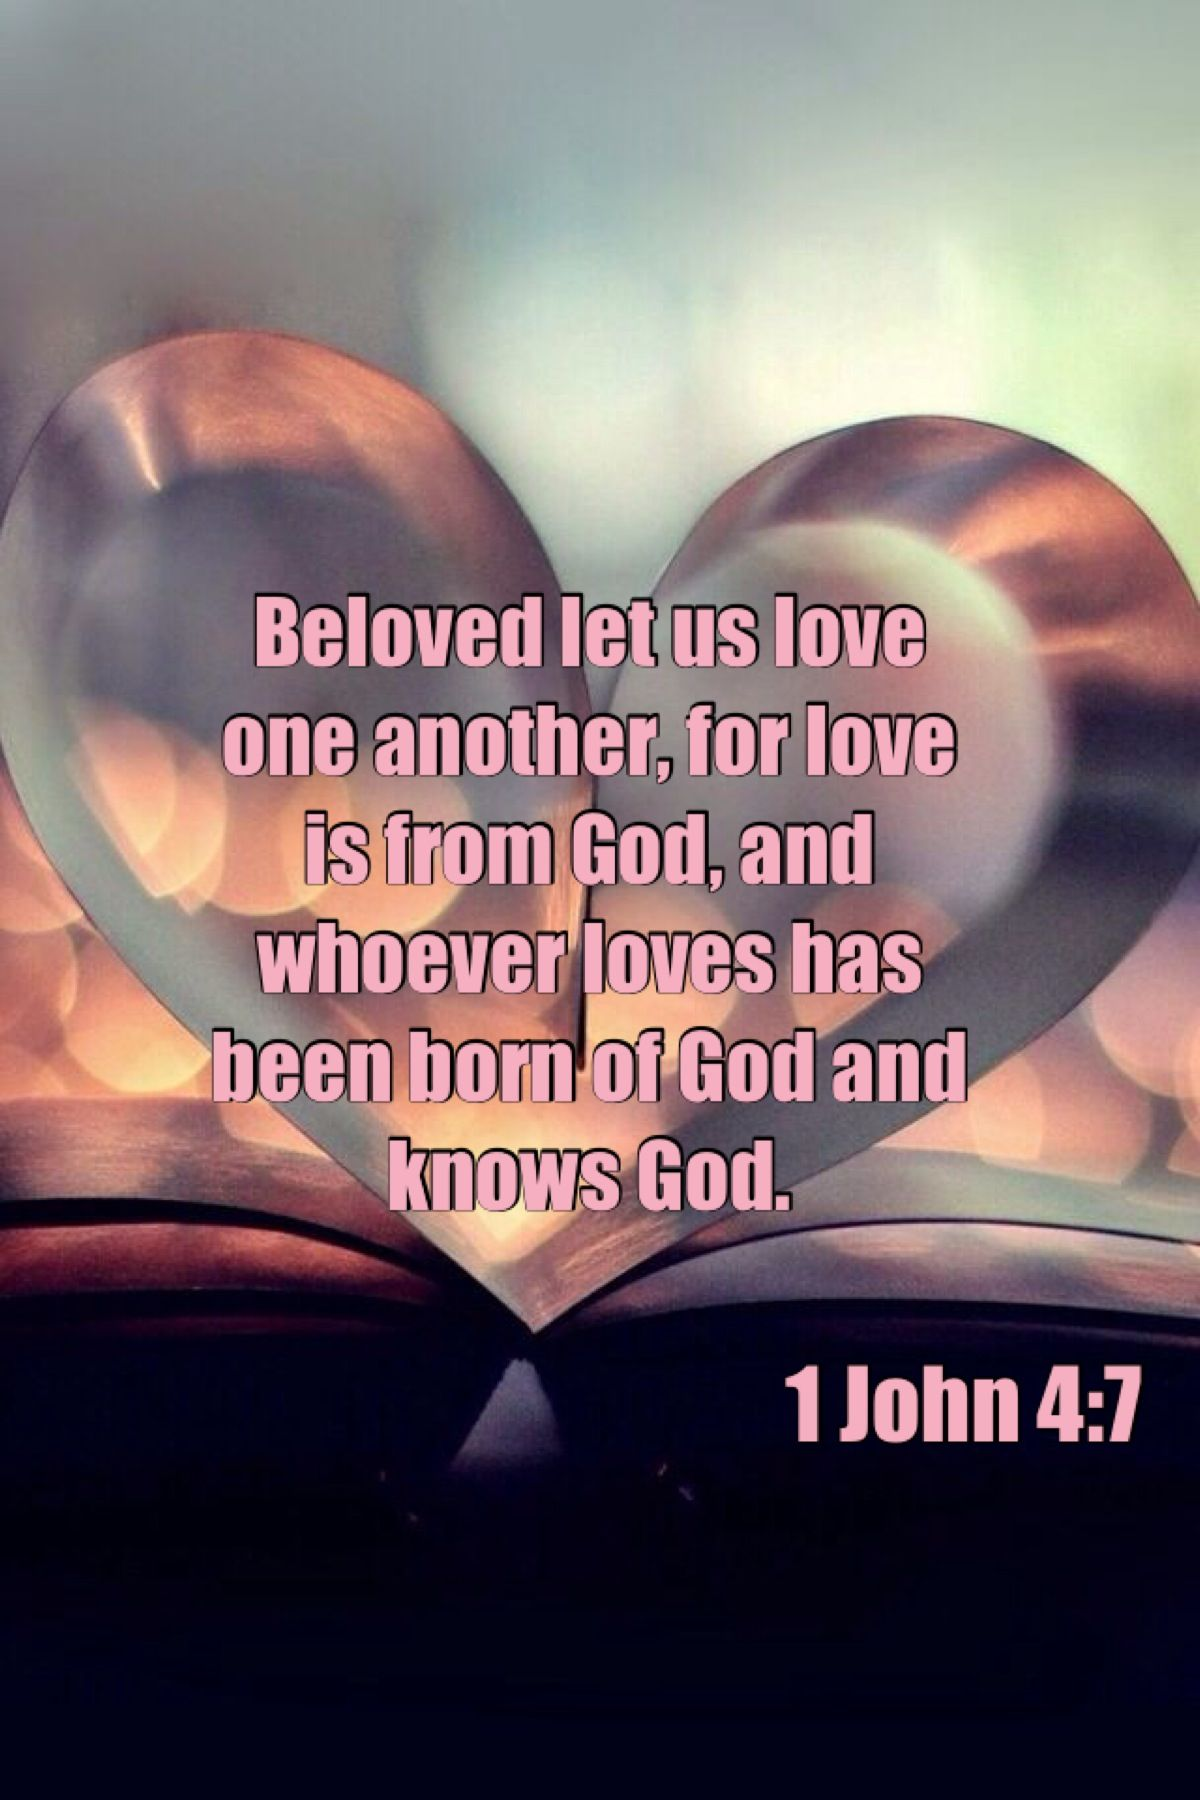 Love One Another Quotes 1 John 47 Kjv Beloved Let Us Love One Another For Love Is Of